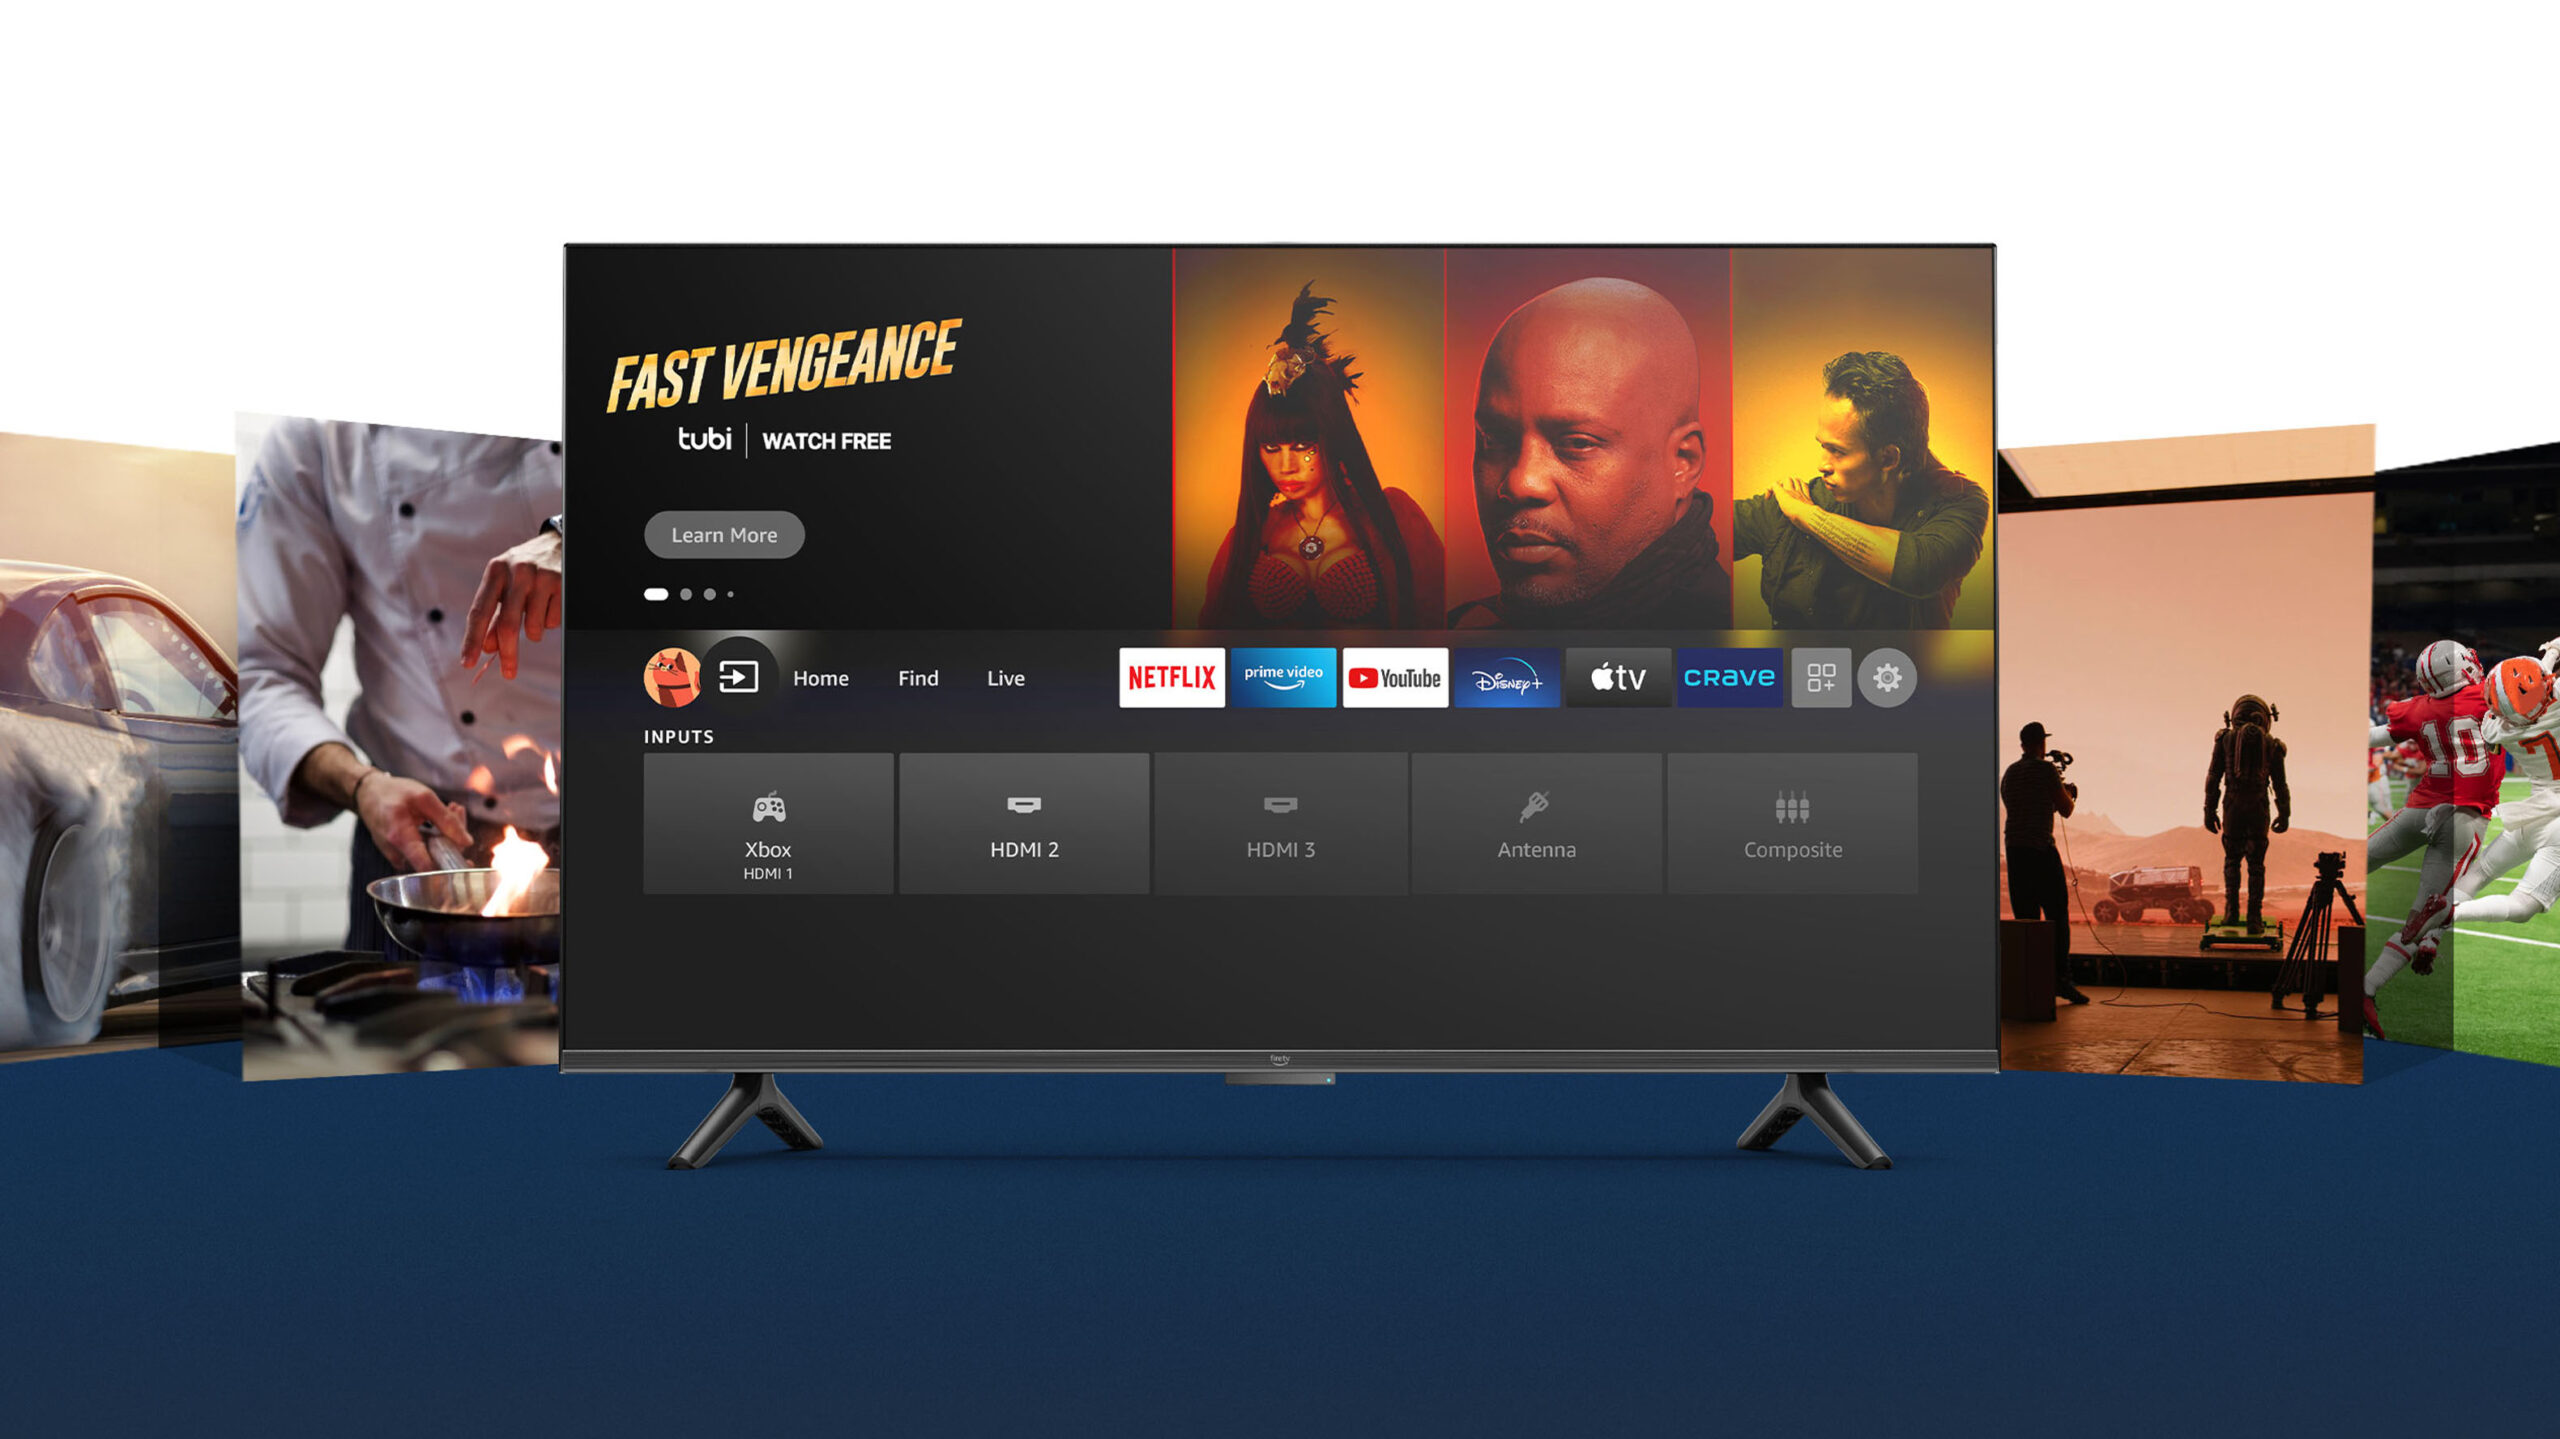 The new Amazon 4k smart TVs–should you buy them?